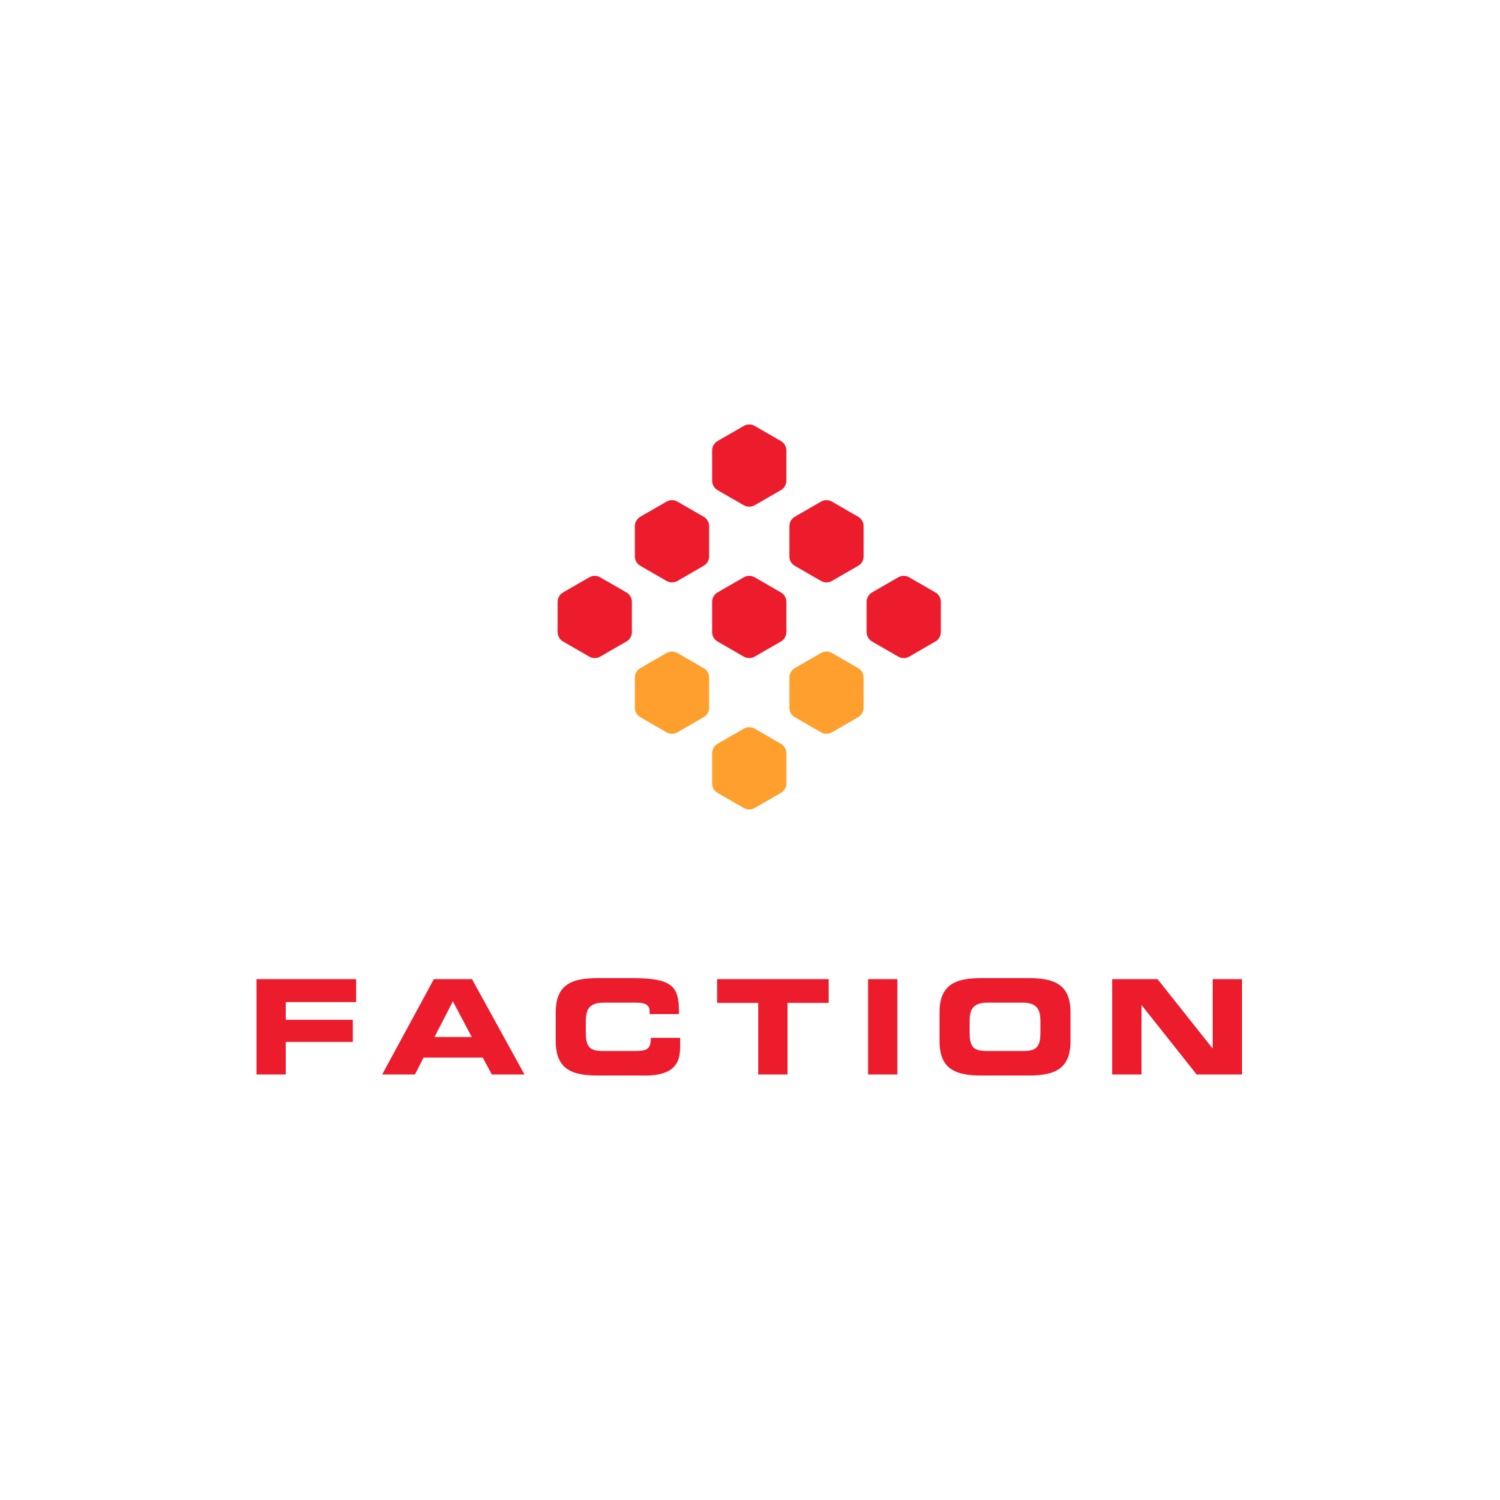 FACTION - Talent Management Services and Technology